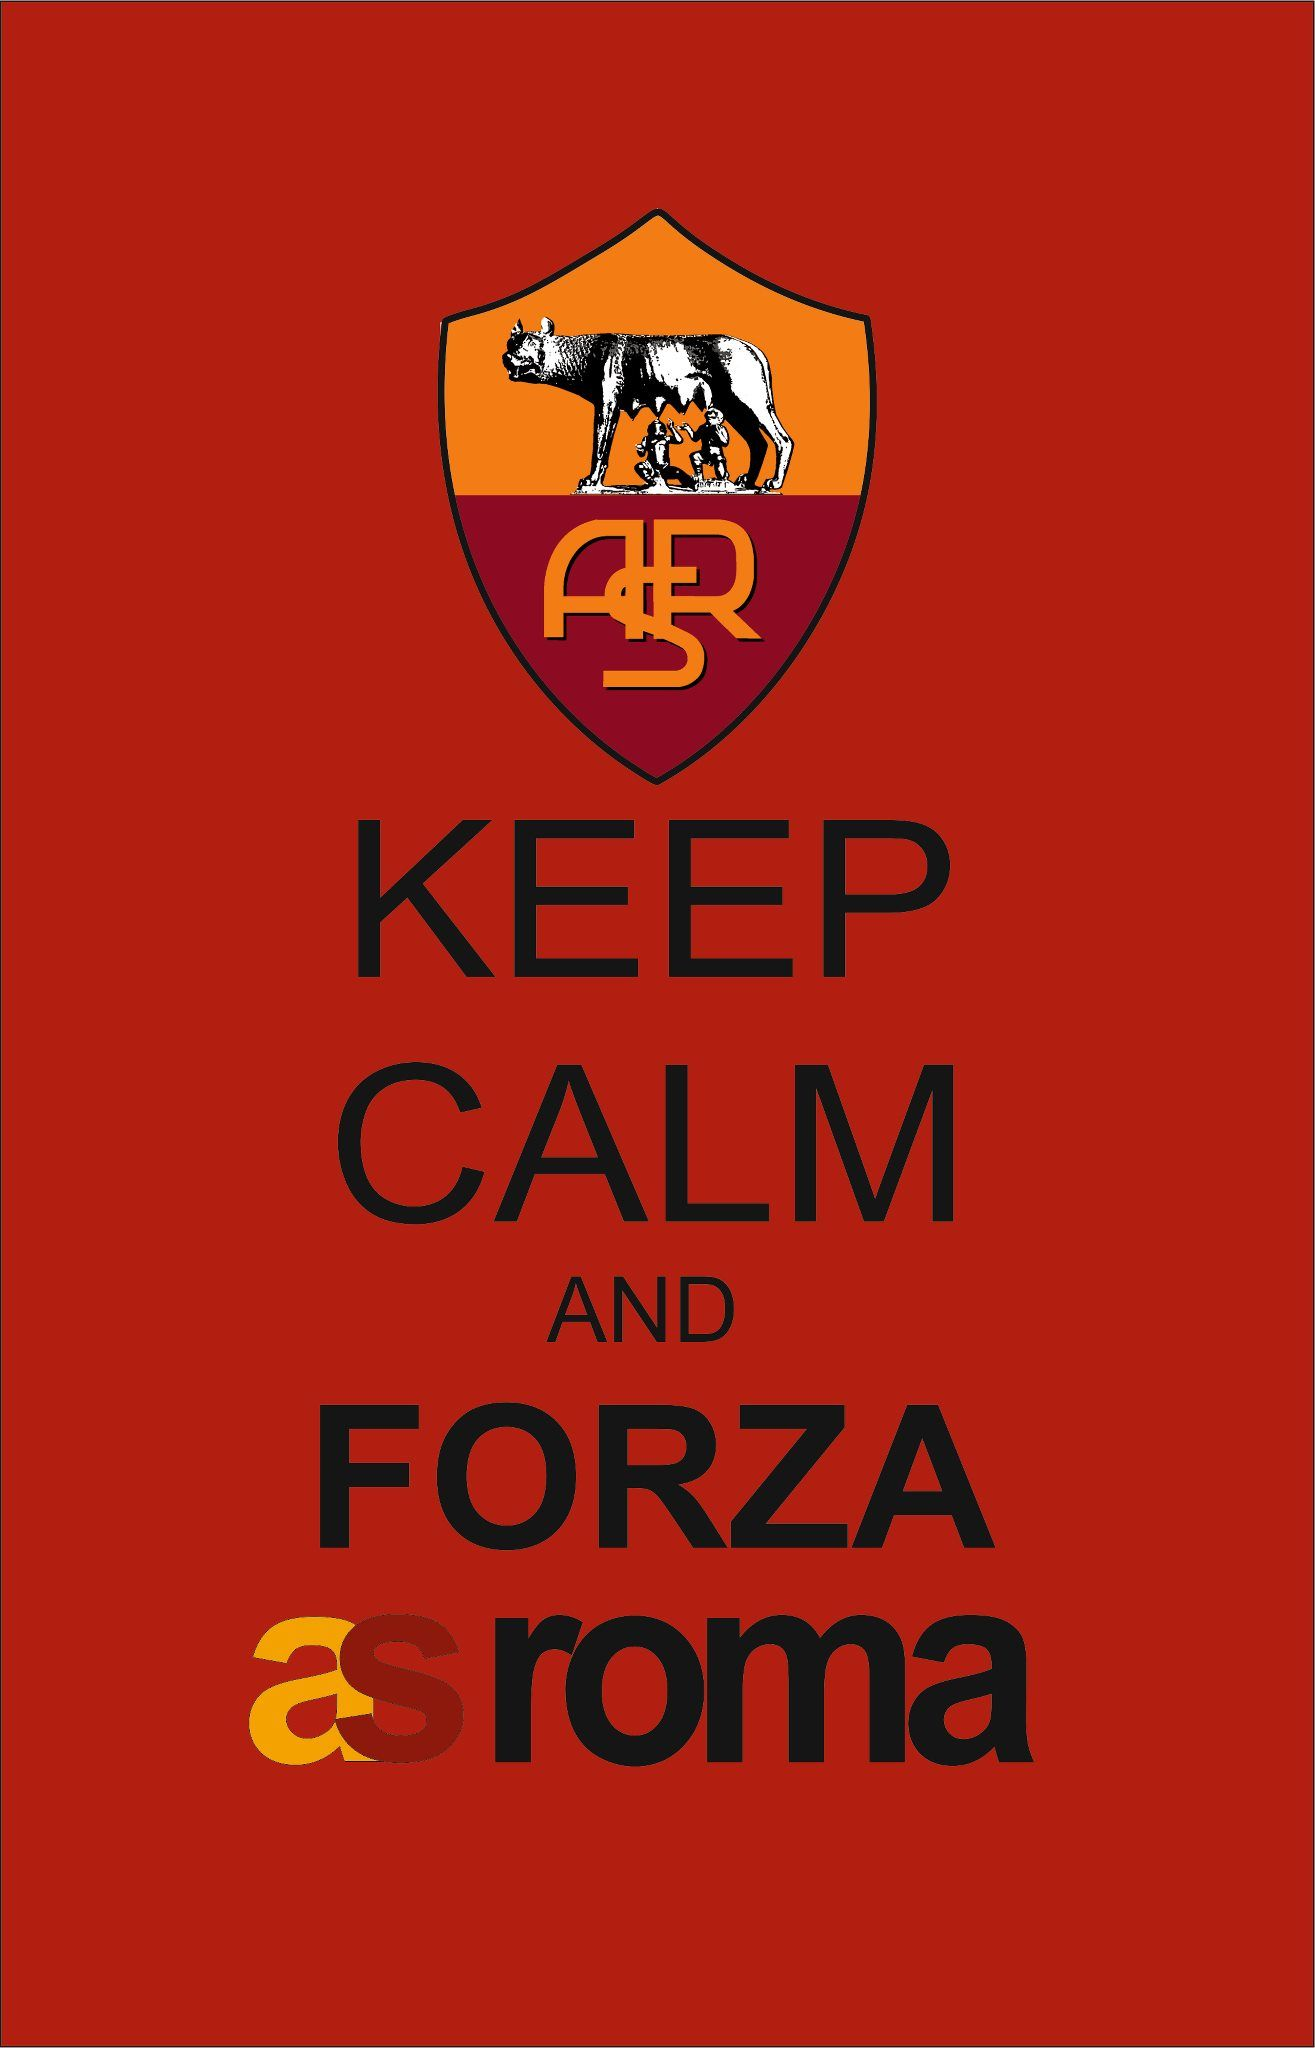 as roma | Words to live by.... | Pinterest